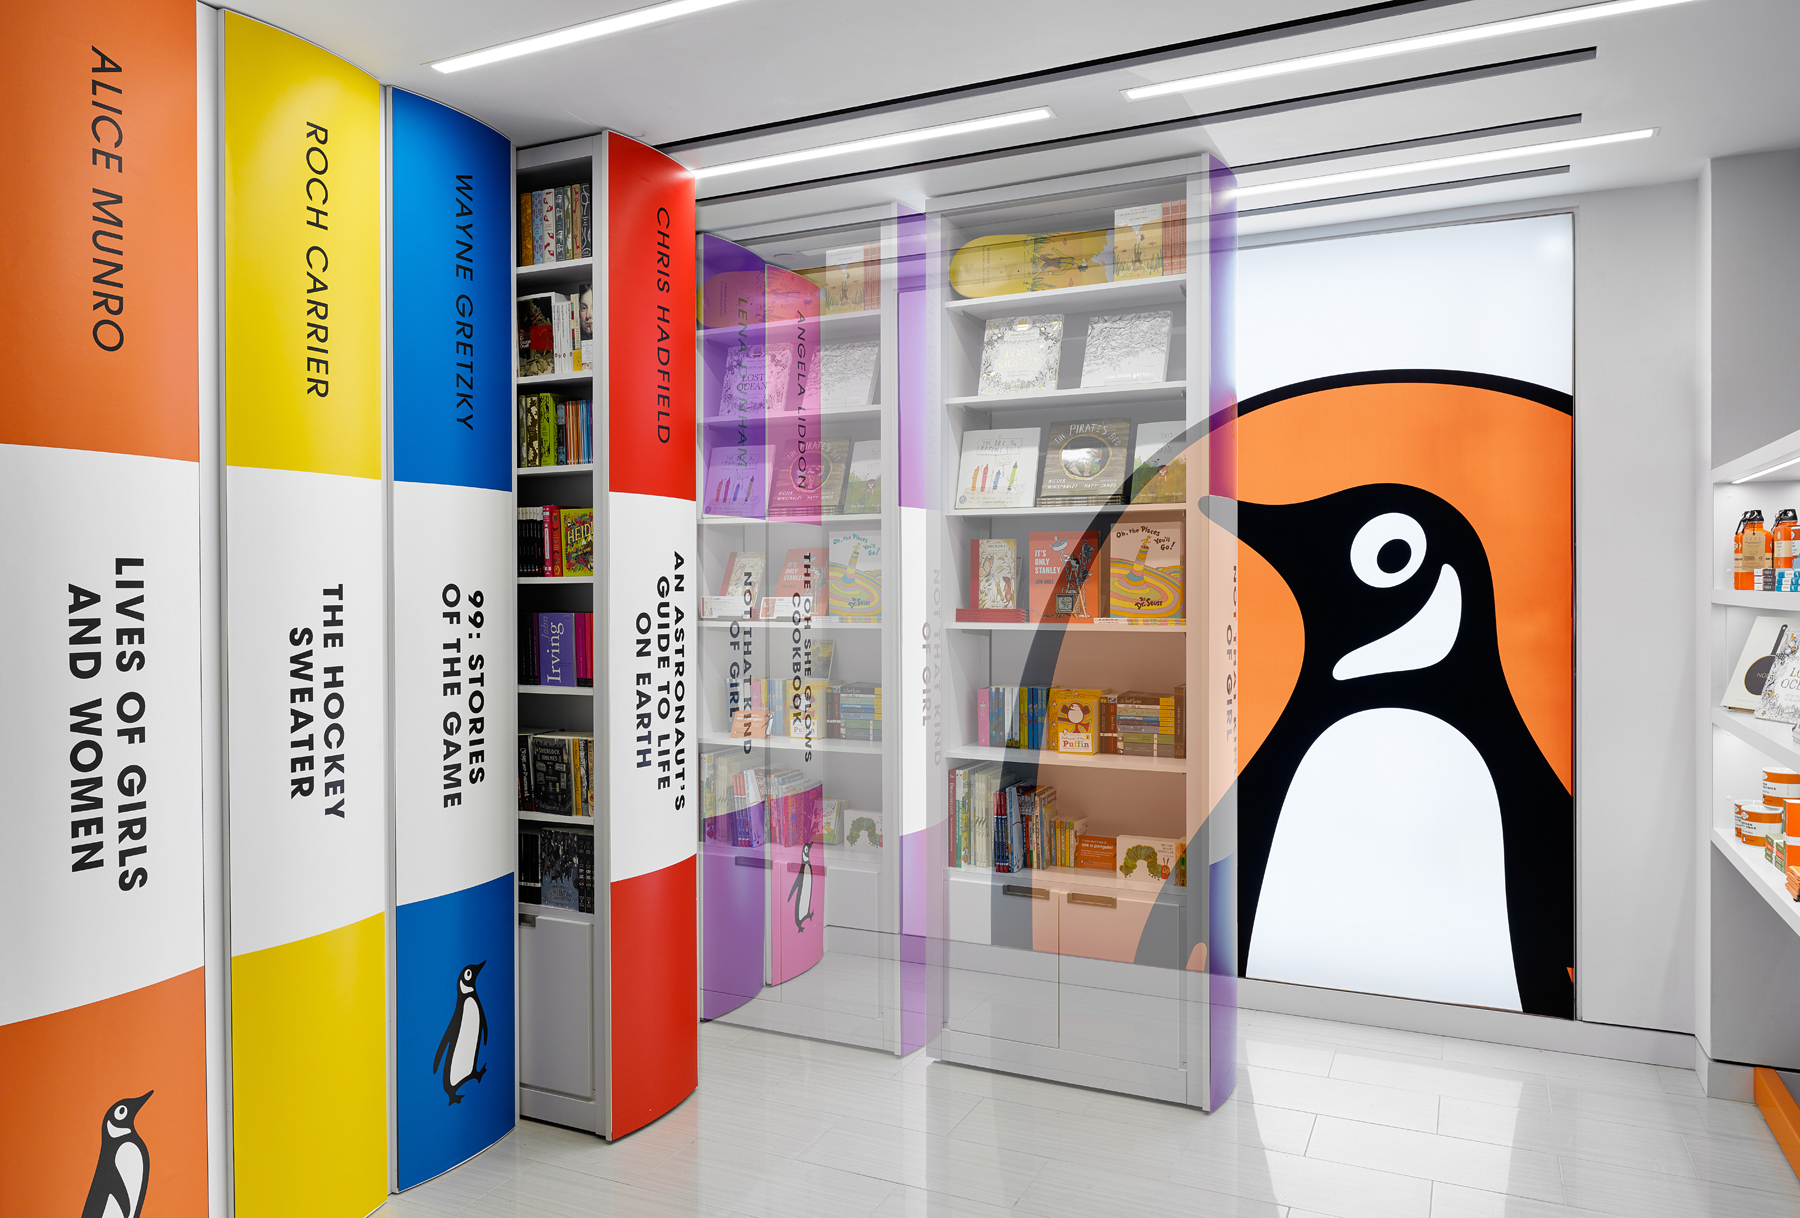 Penguin Shop rendering showing how shelves pull out